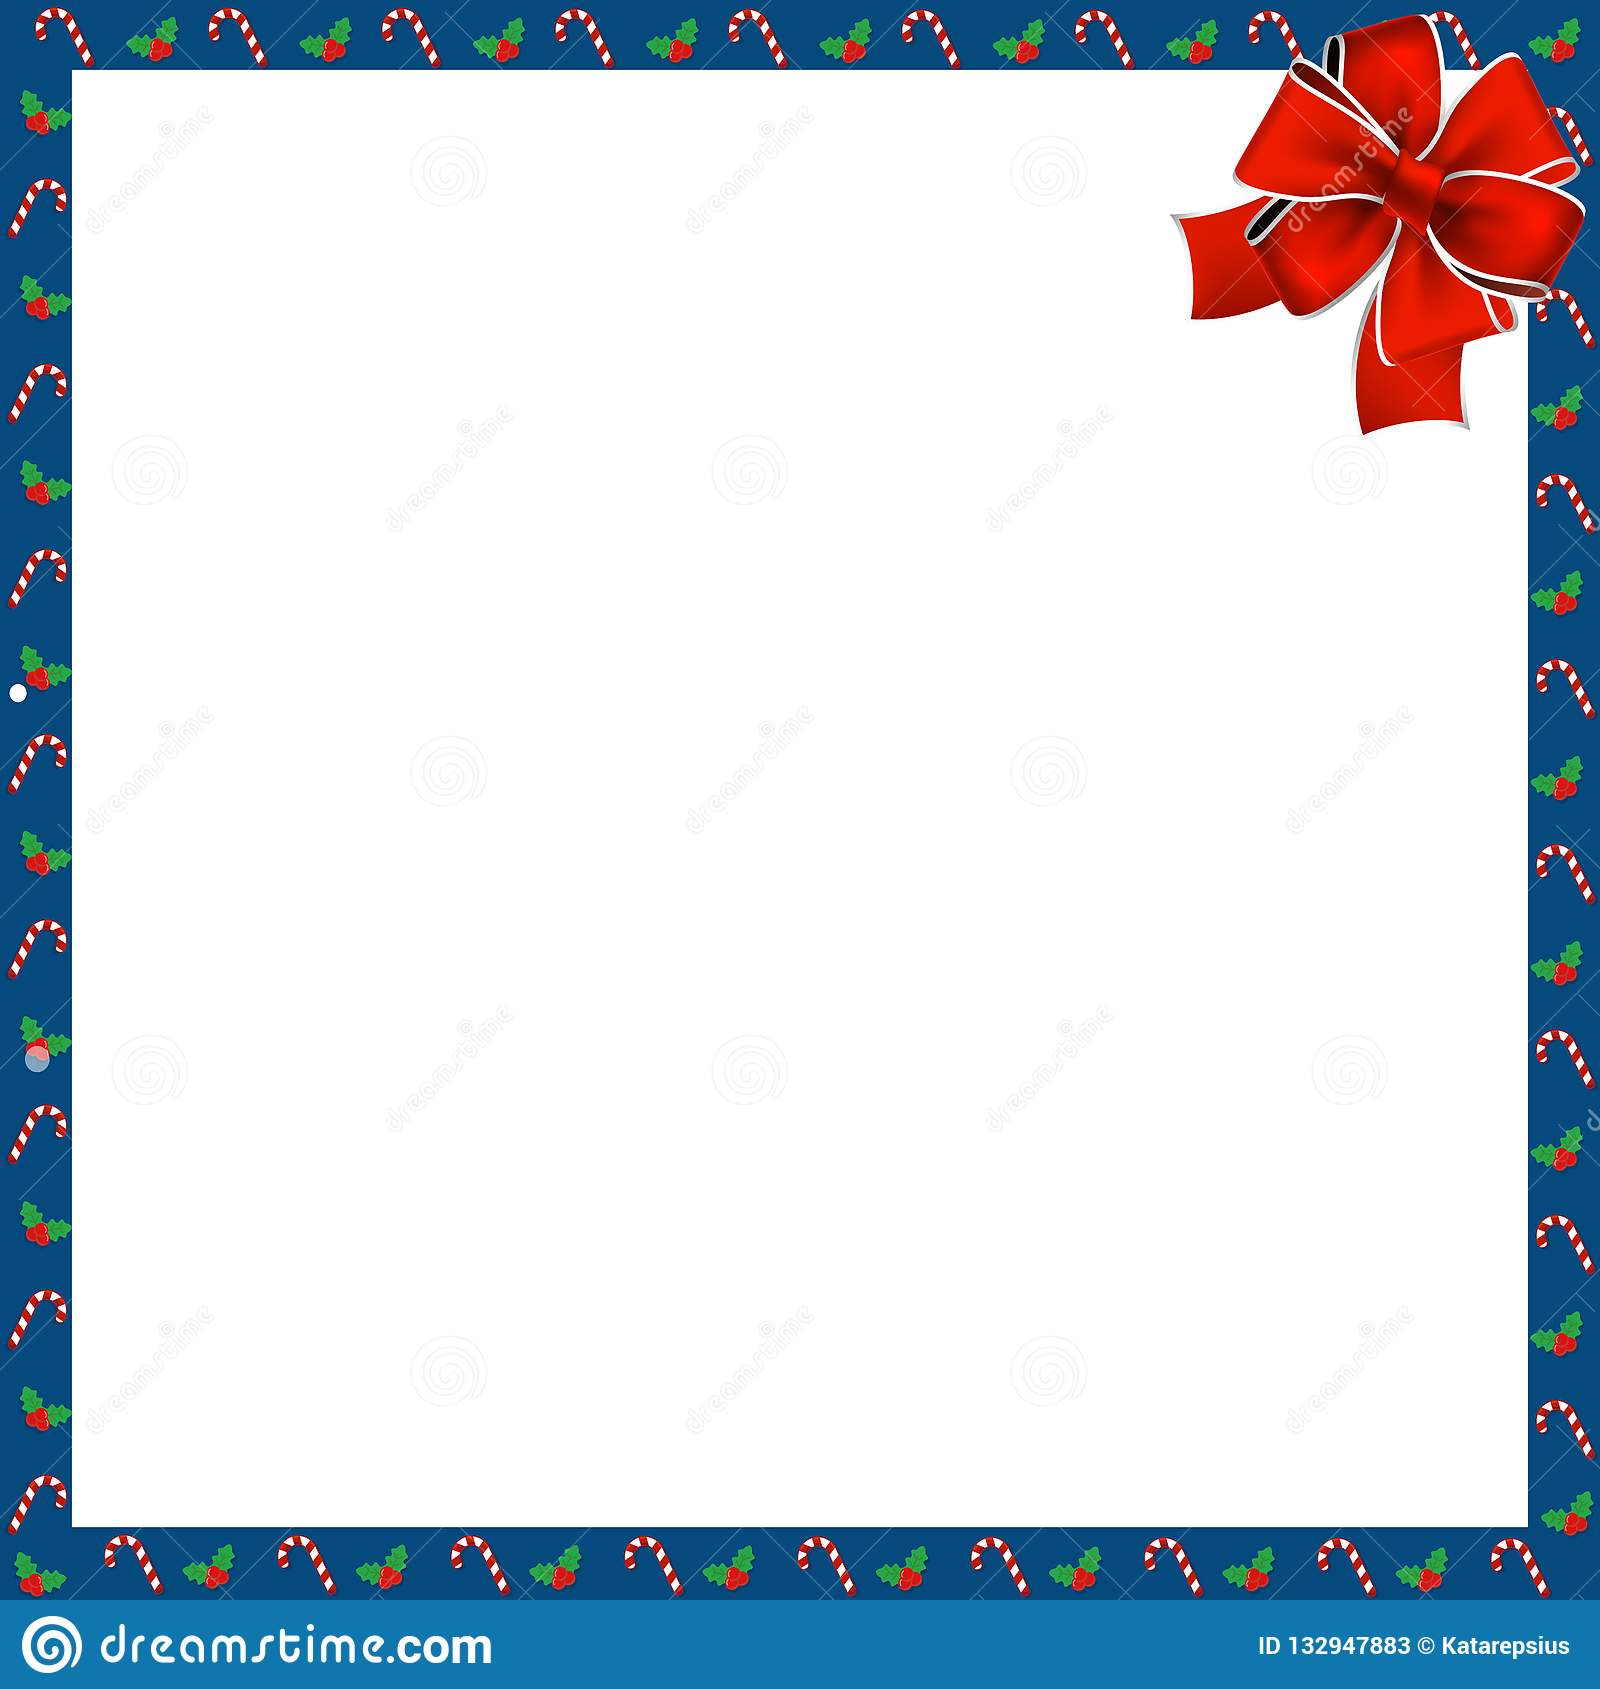 cute christmas or new year square border with candy cane berries pattern and red ribbon